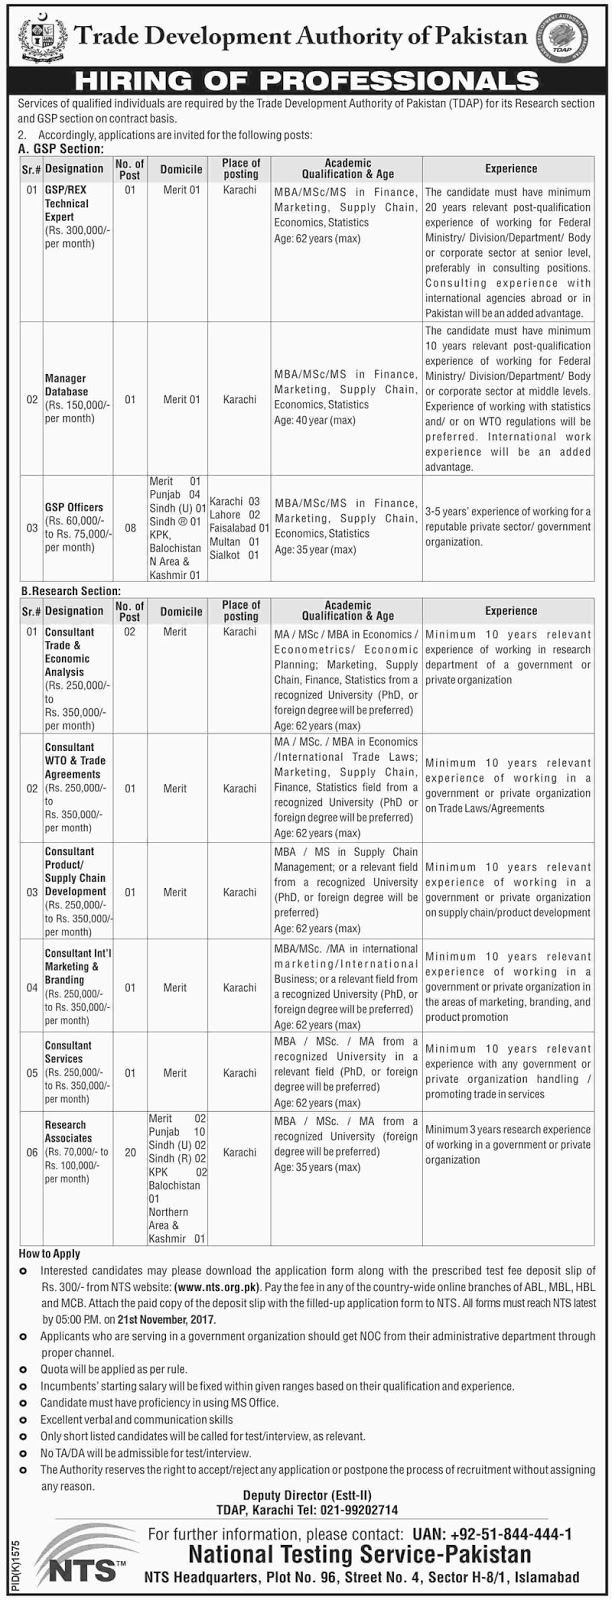 Trade development Authority of Pakistan jobs,GSP jobs,Researcher jobs,karachi jobs, Pakistan Jobs, Jobs in Pakistan, Jobs in Sindh, Finance Jobs, Supply Chain Jobs, Economics jobs